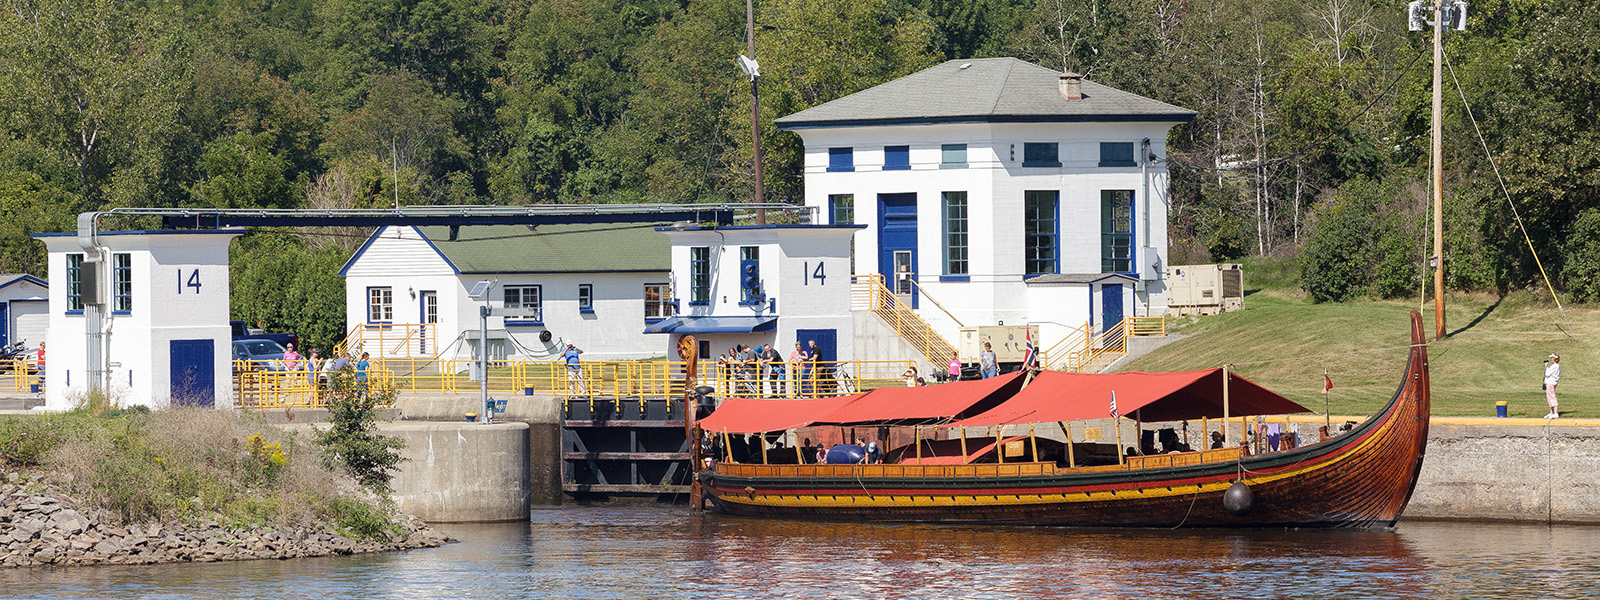 Viking replica ship leaves lock 14.